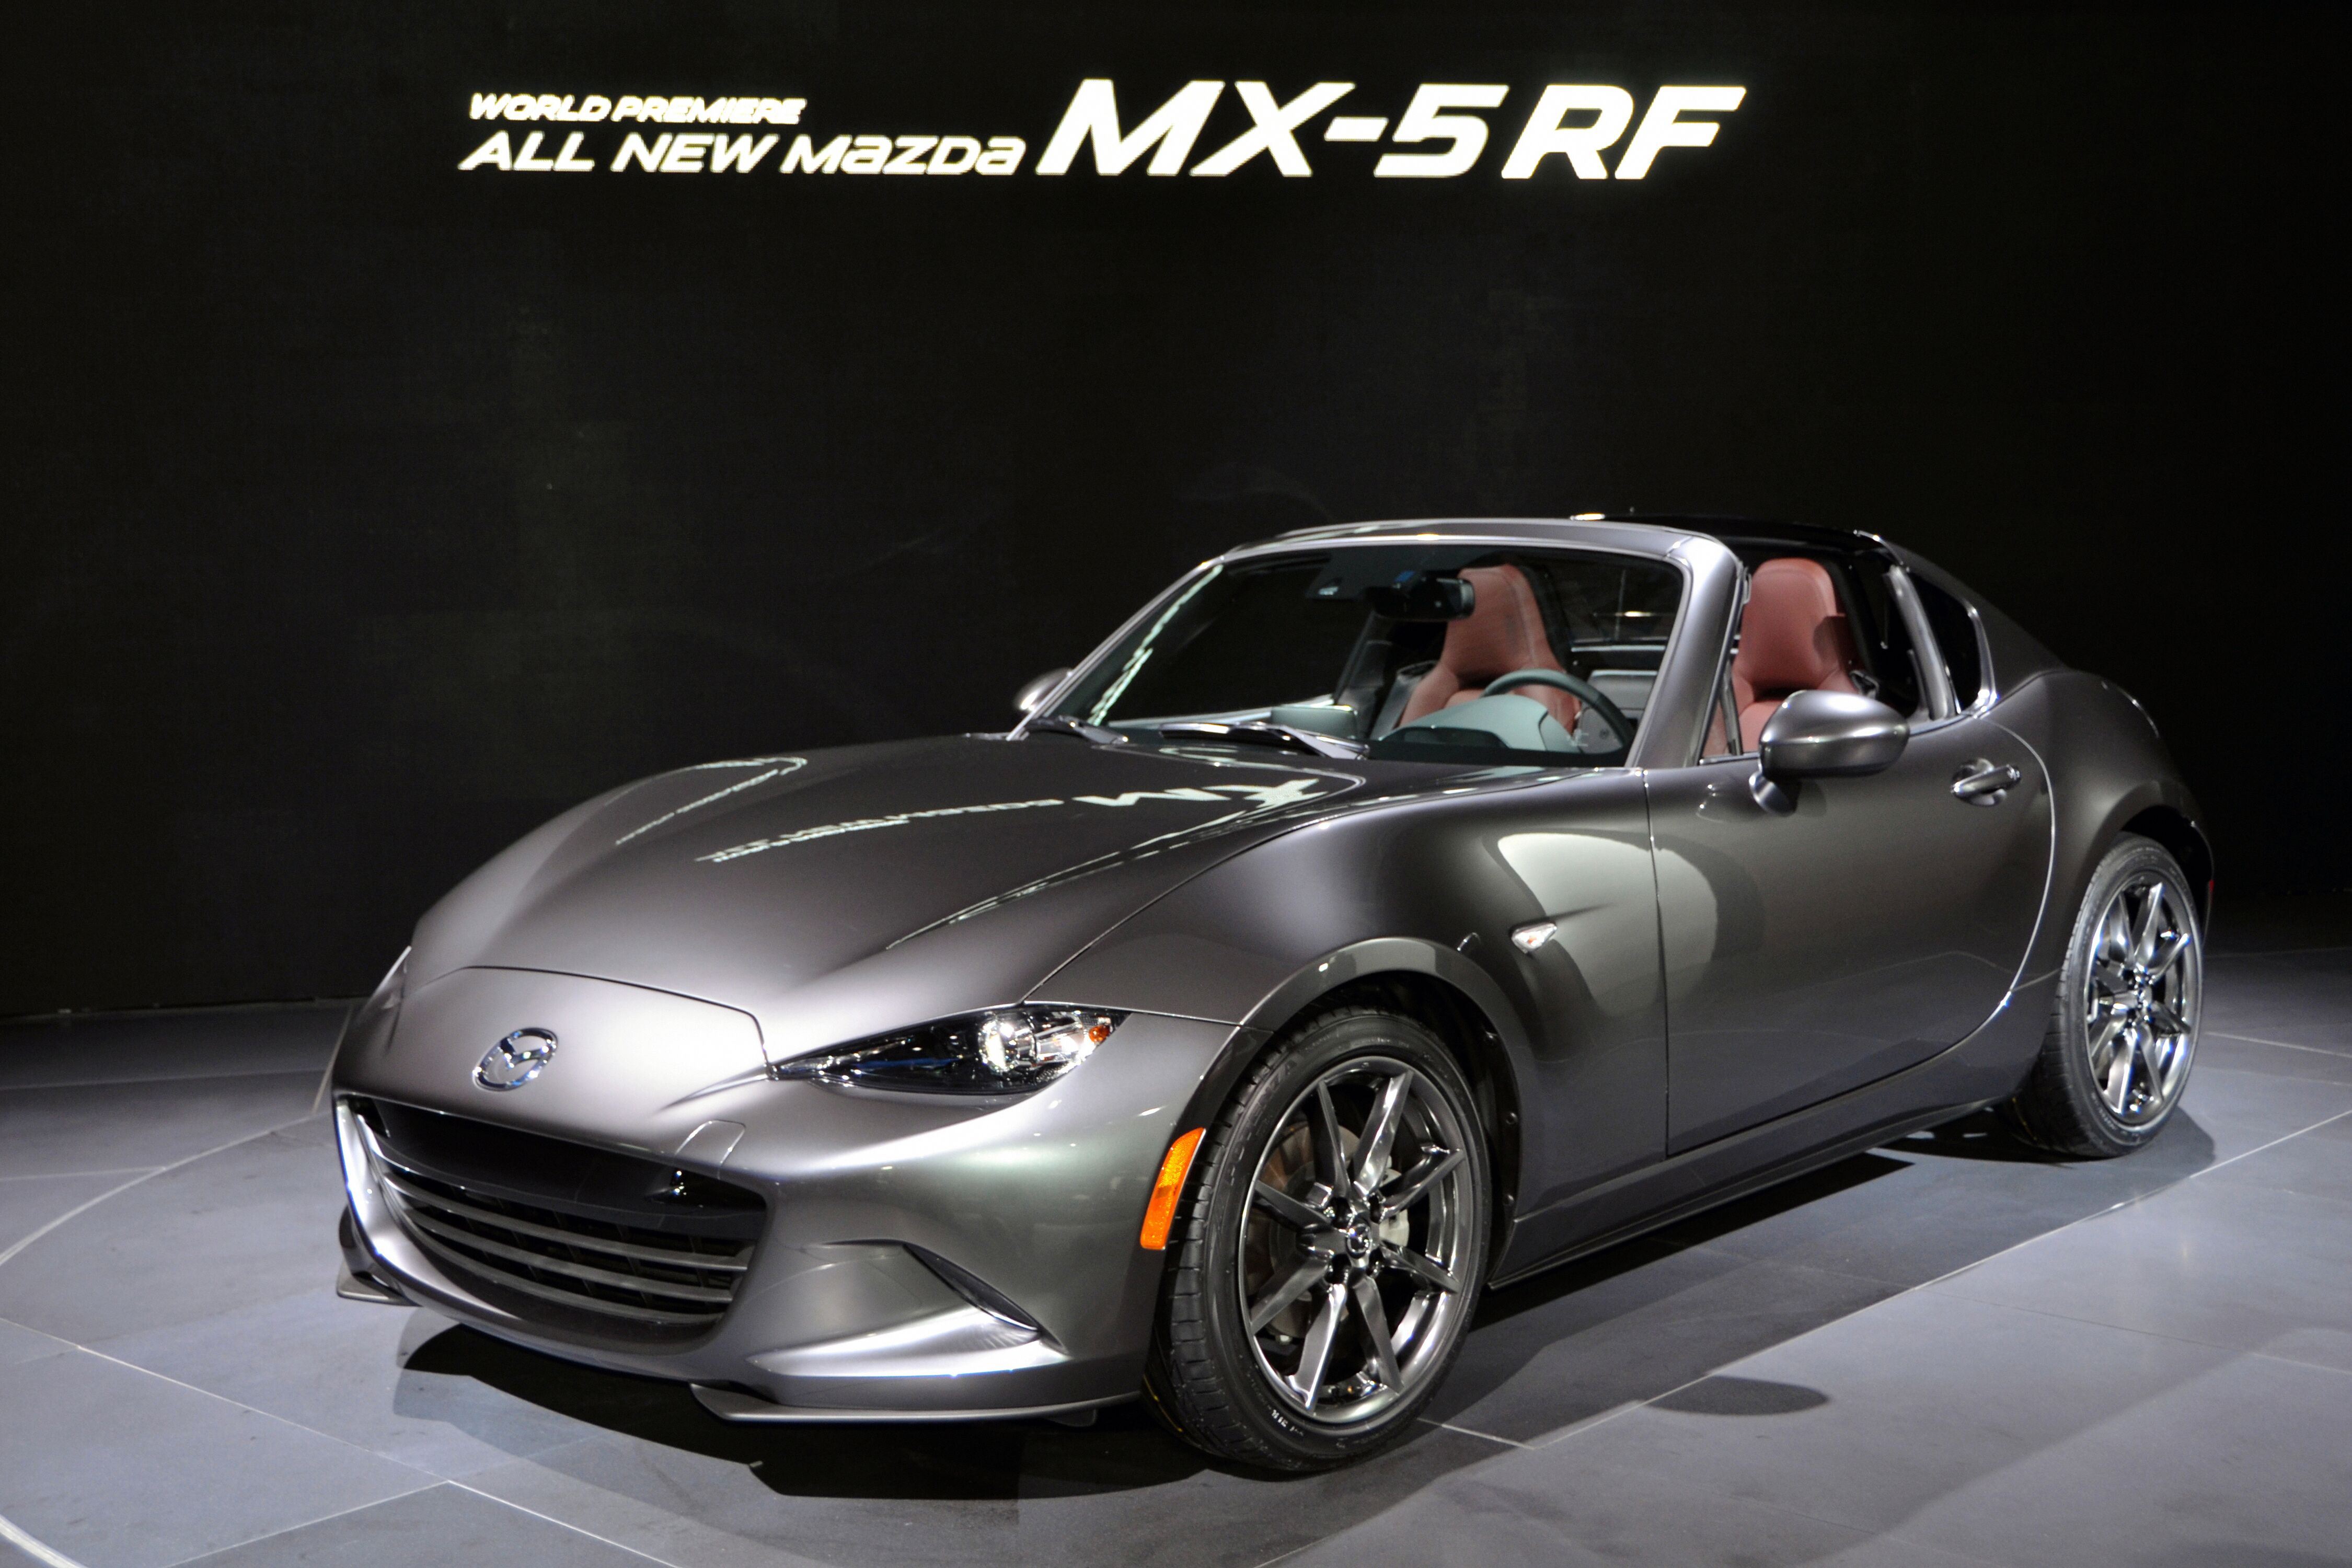 magazine sport car nav hardtop by mx mazda long drift test term tests reviews rf miata review will our